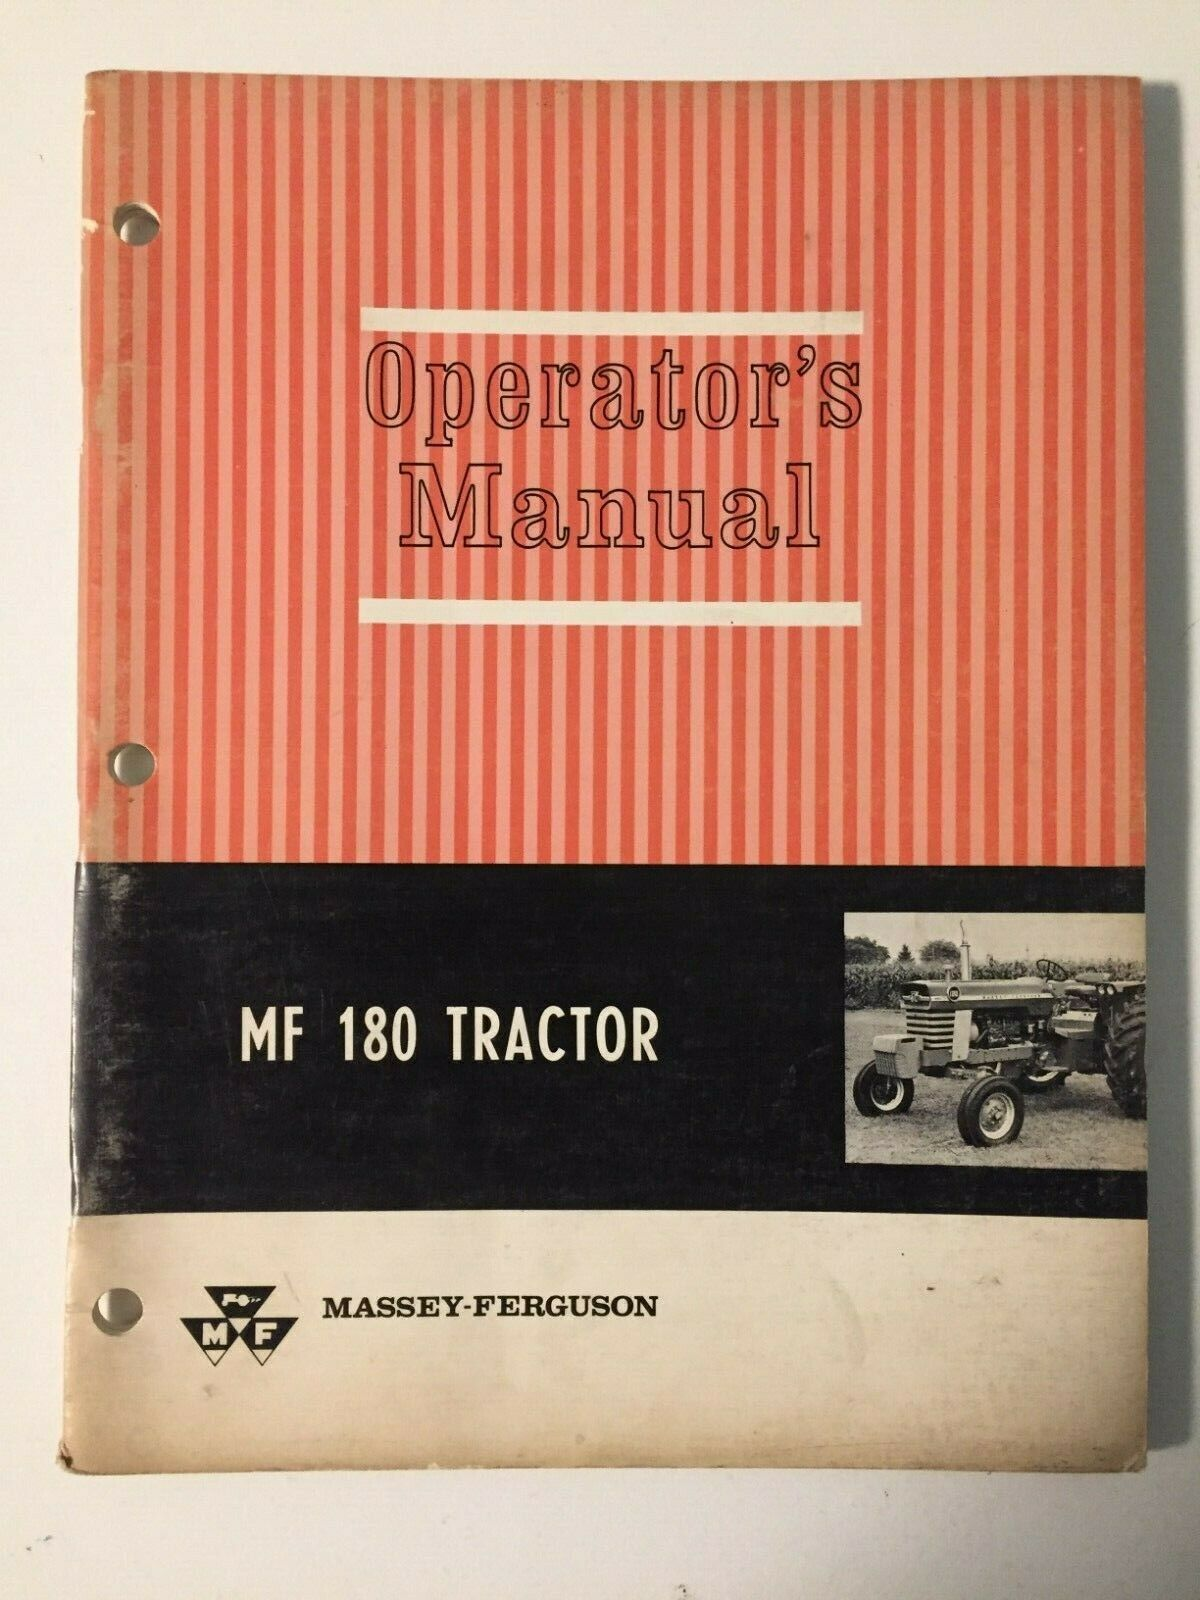 Massey-Ferguson MF 180 Gas & Diesel Tractor Operator's Owner's Manual, near  MINT 1 of 1Only 1 available See More